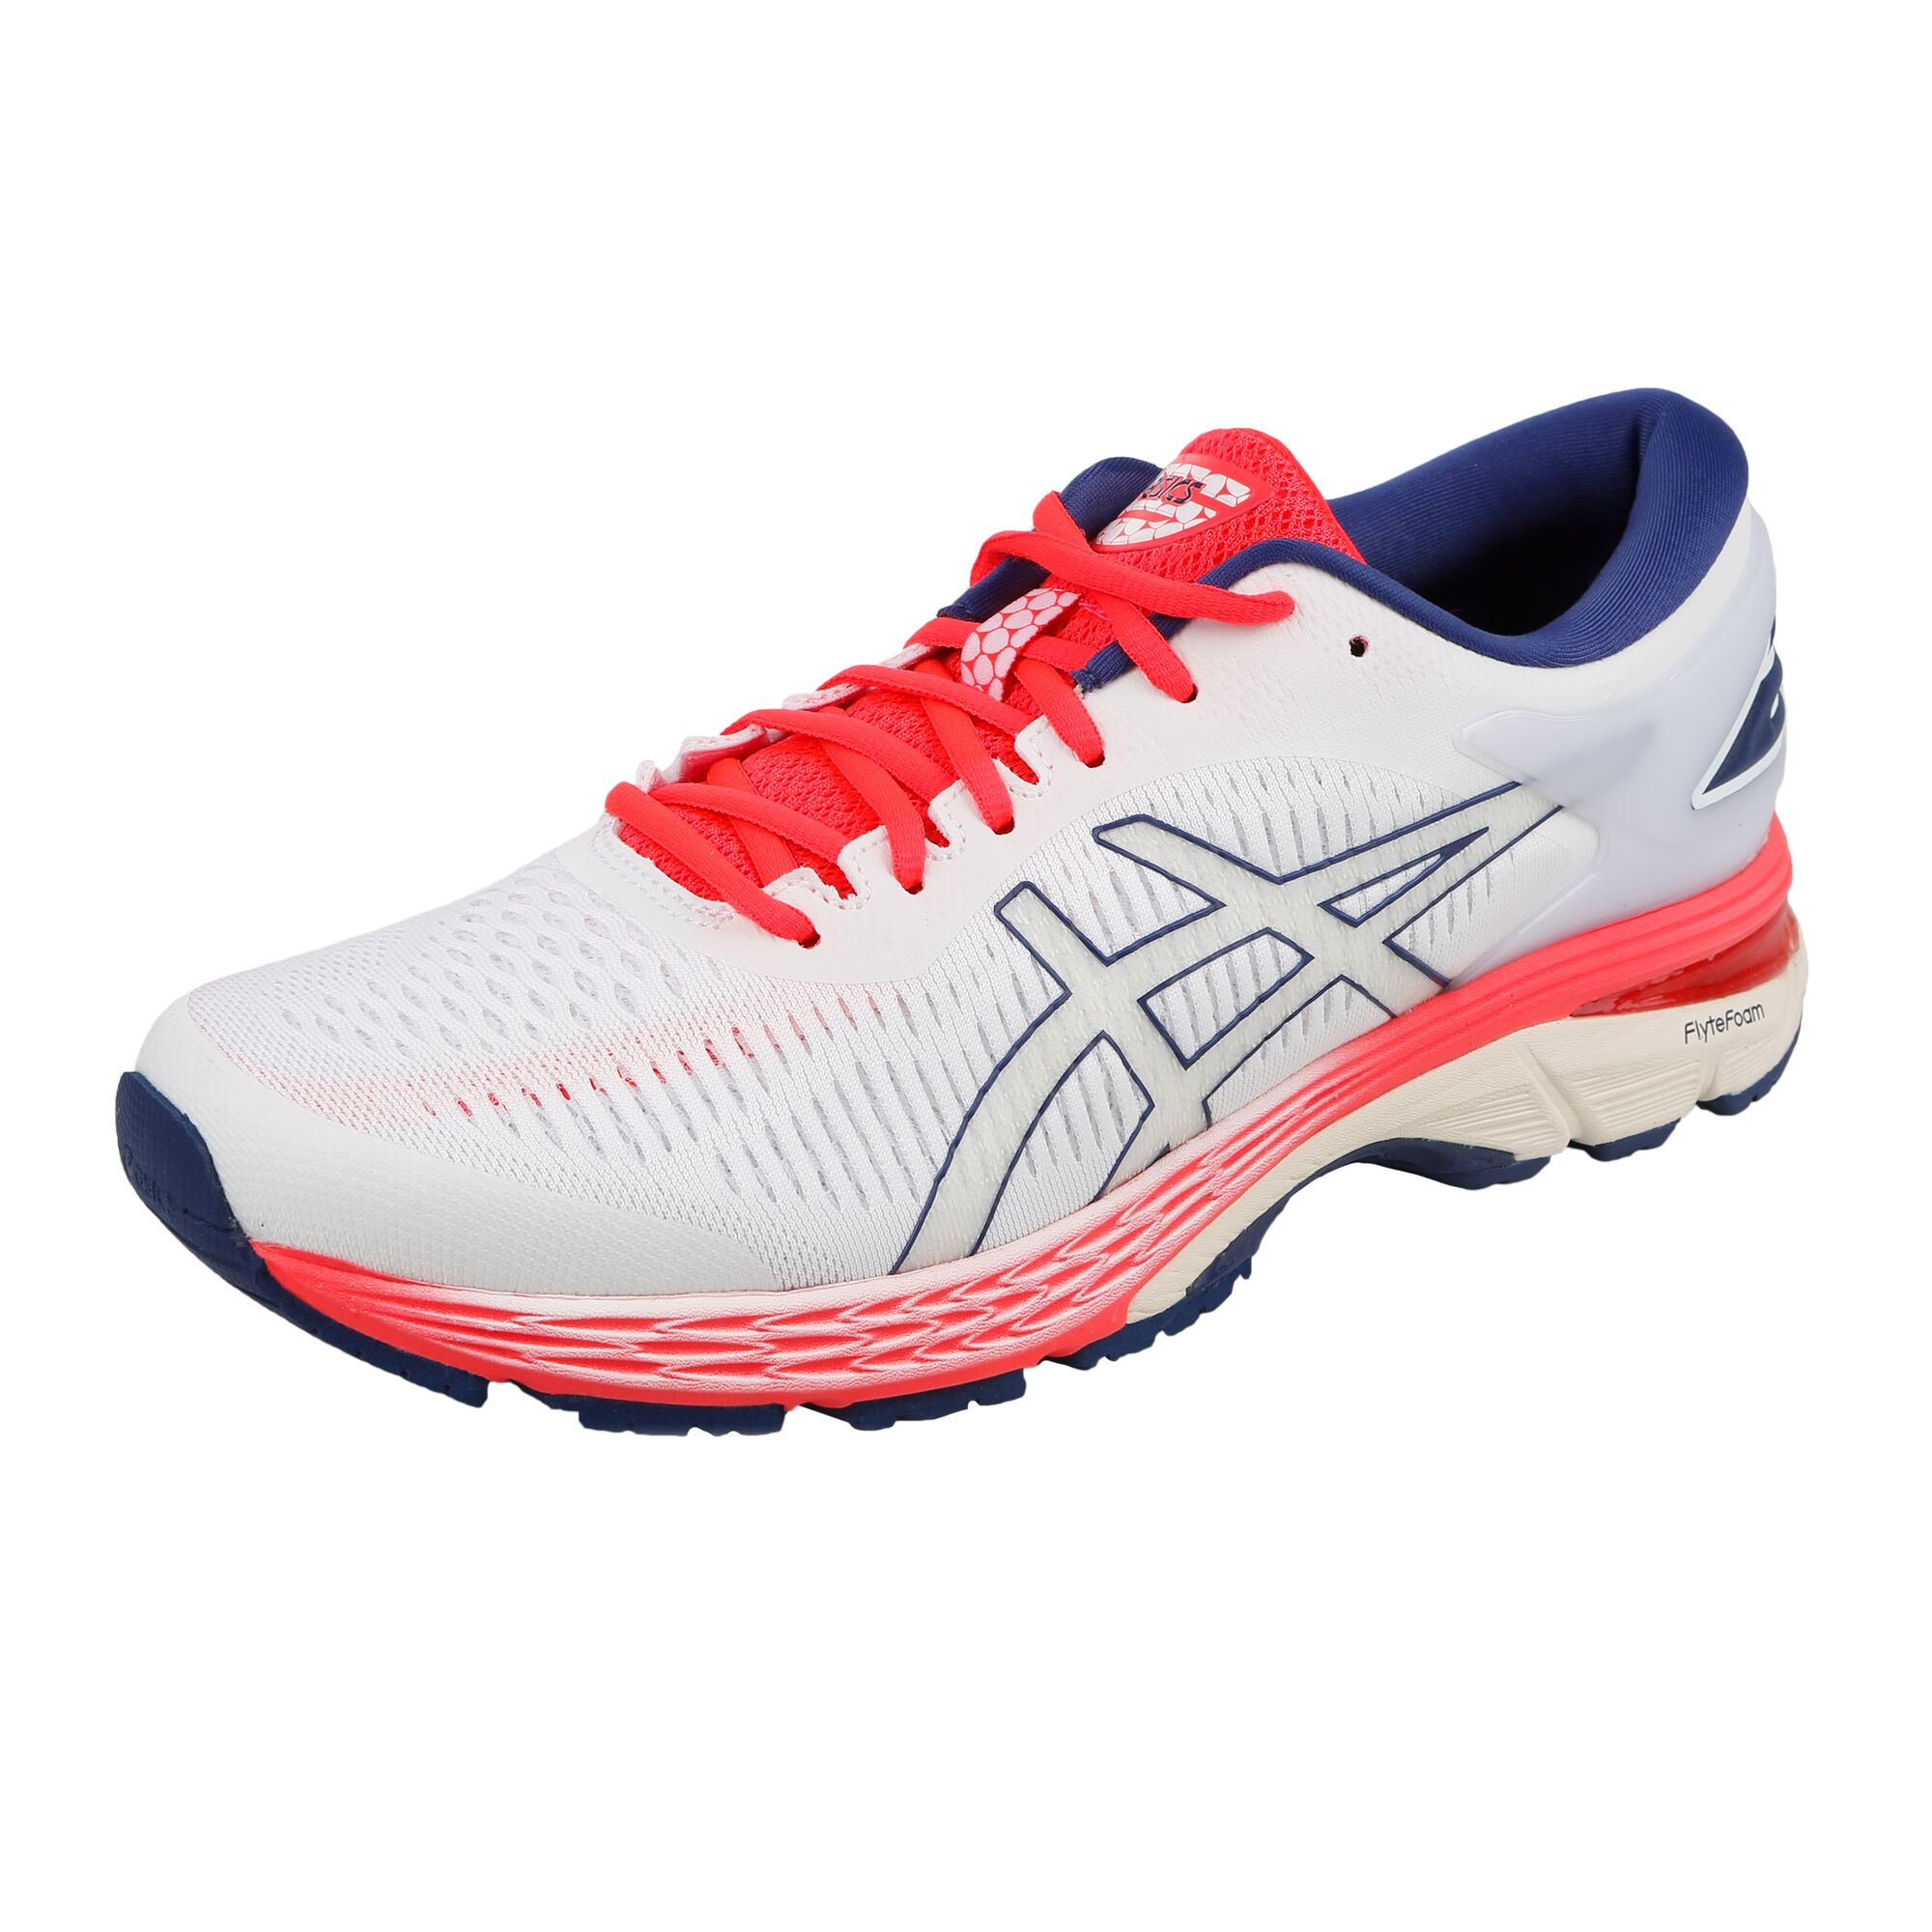 buy Asics Gel-Kayano 25 Stability Running Shoe Women - White ad2f5671c4e